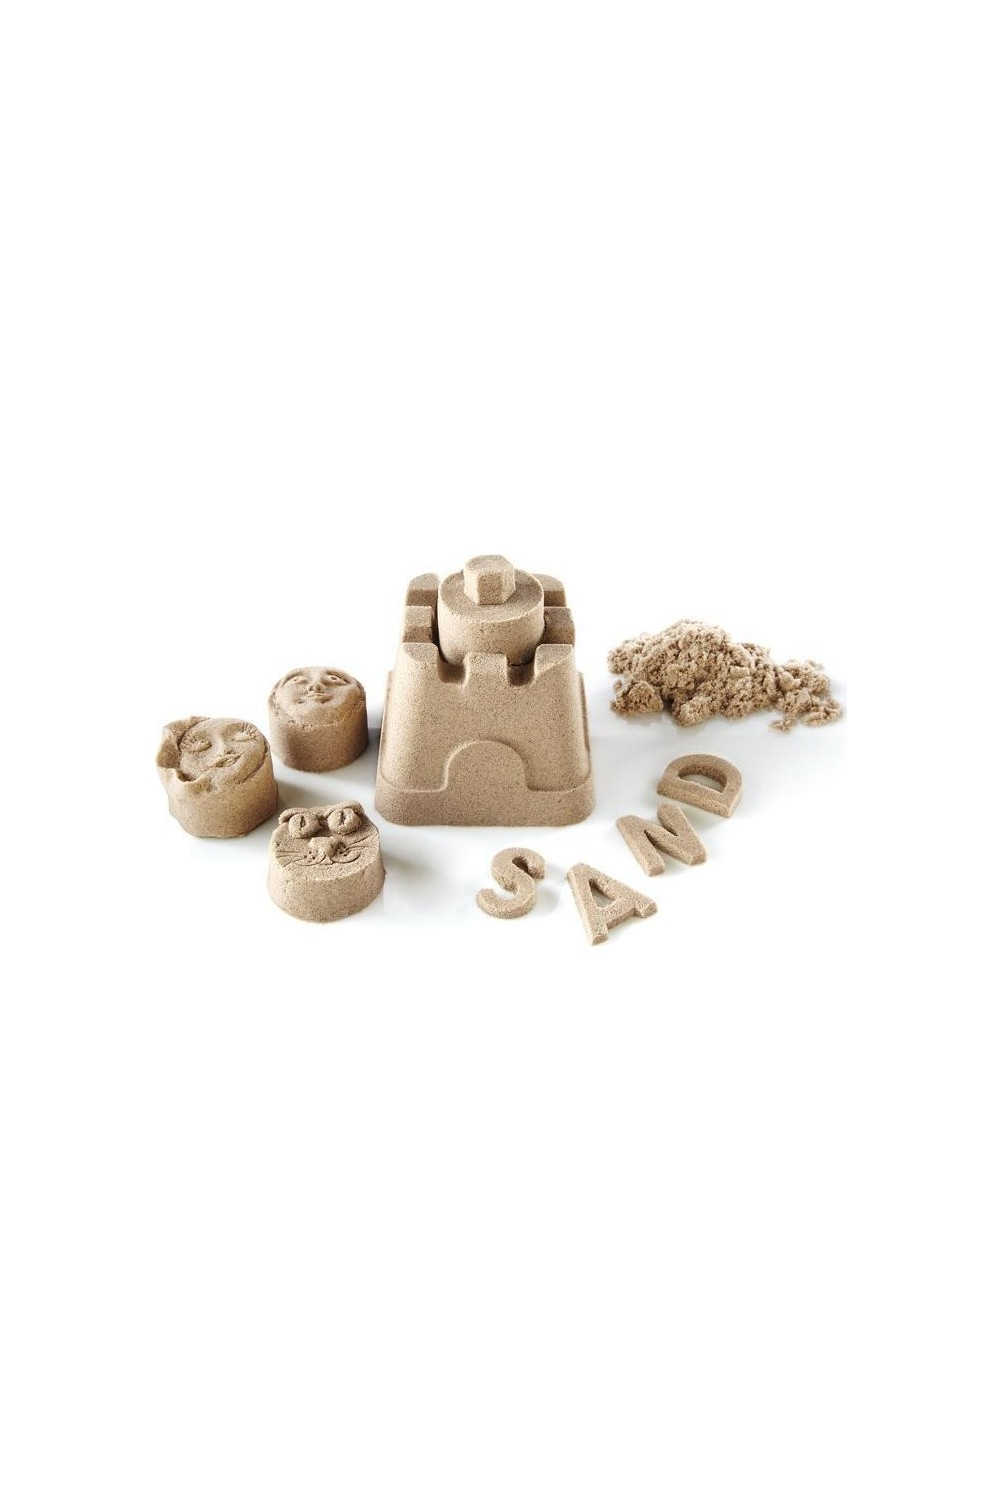 Blueway Kids' Kinetic Sand